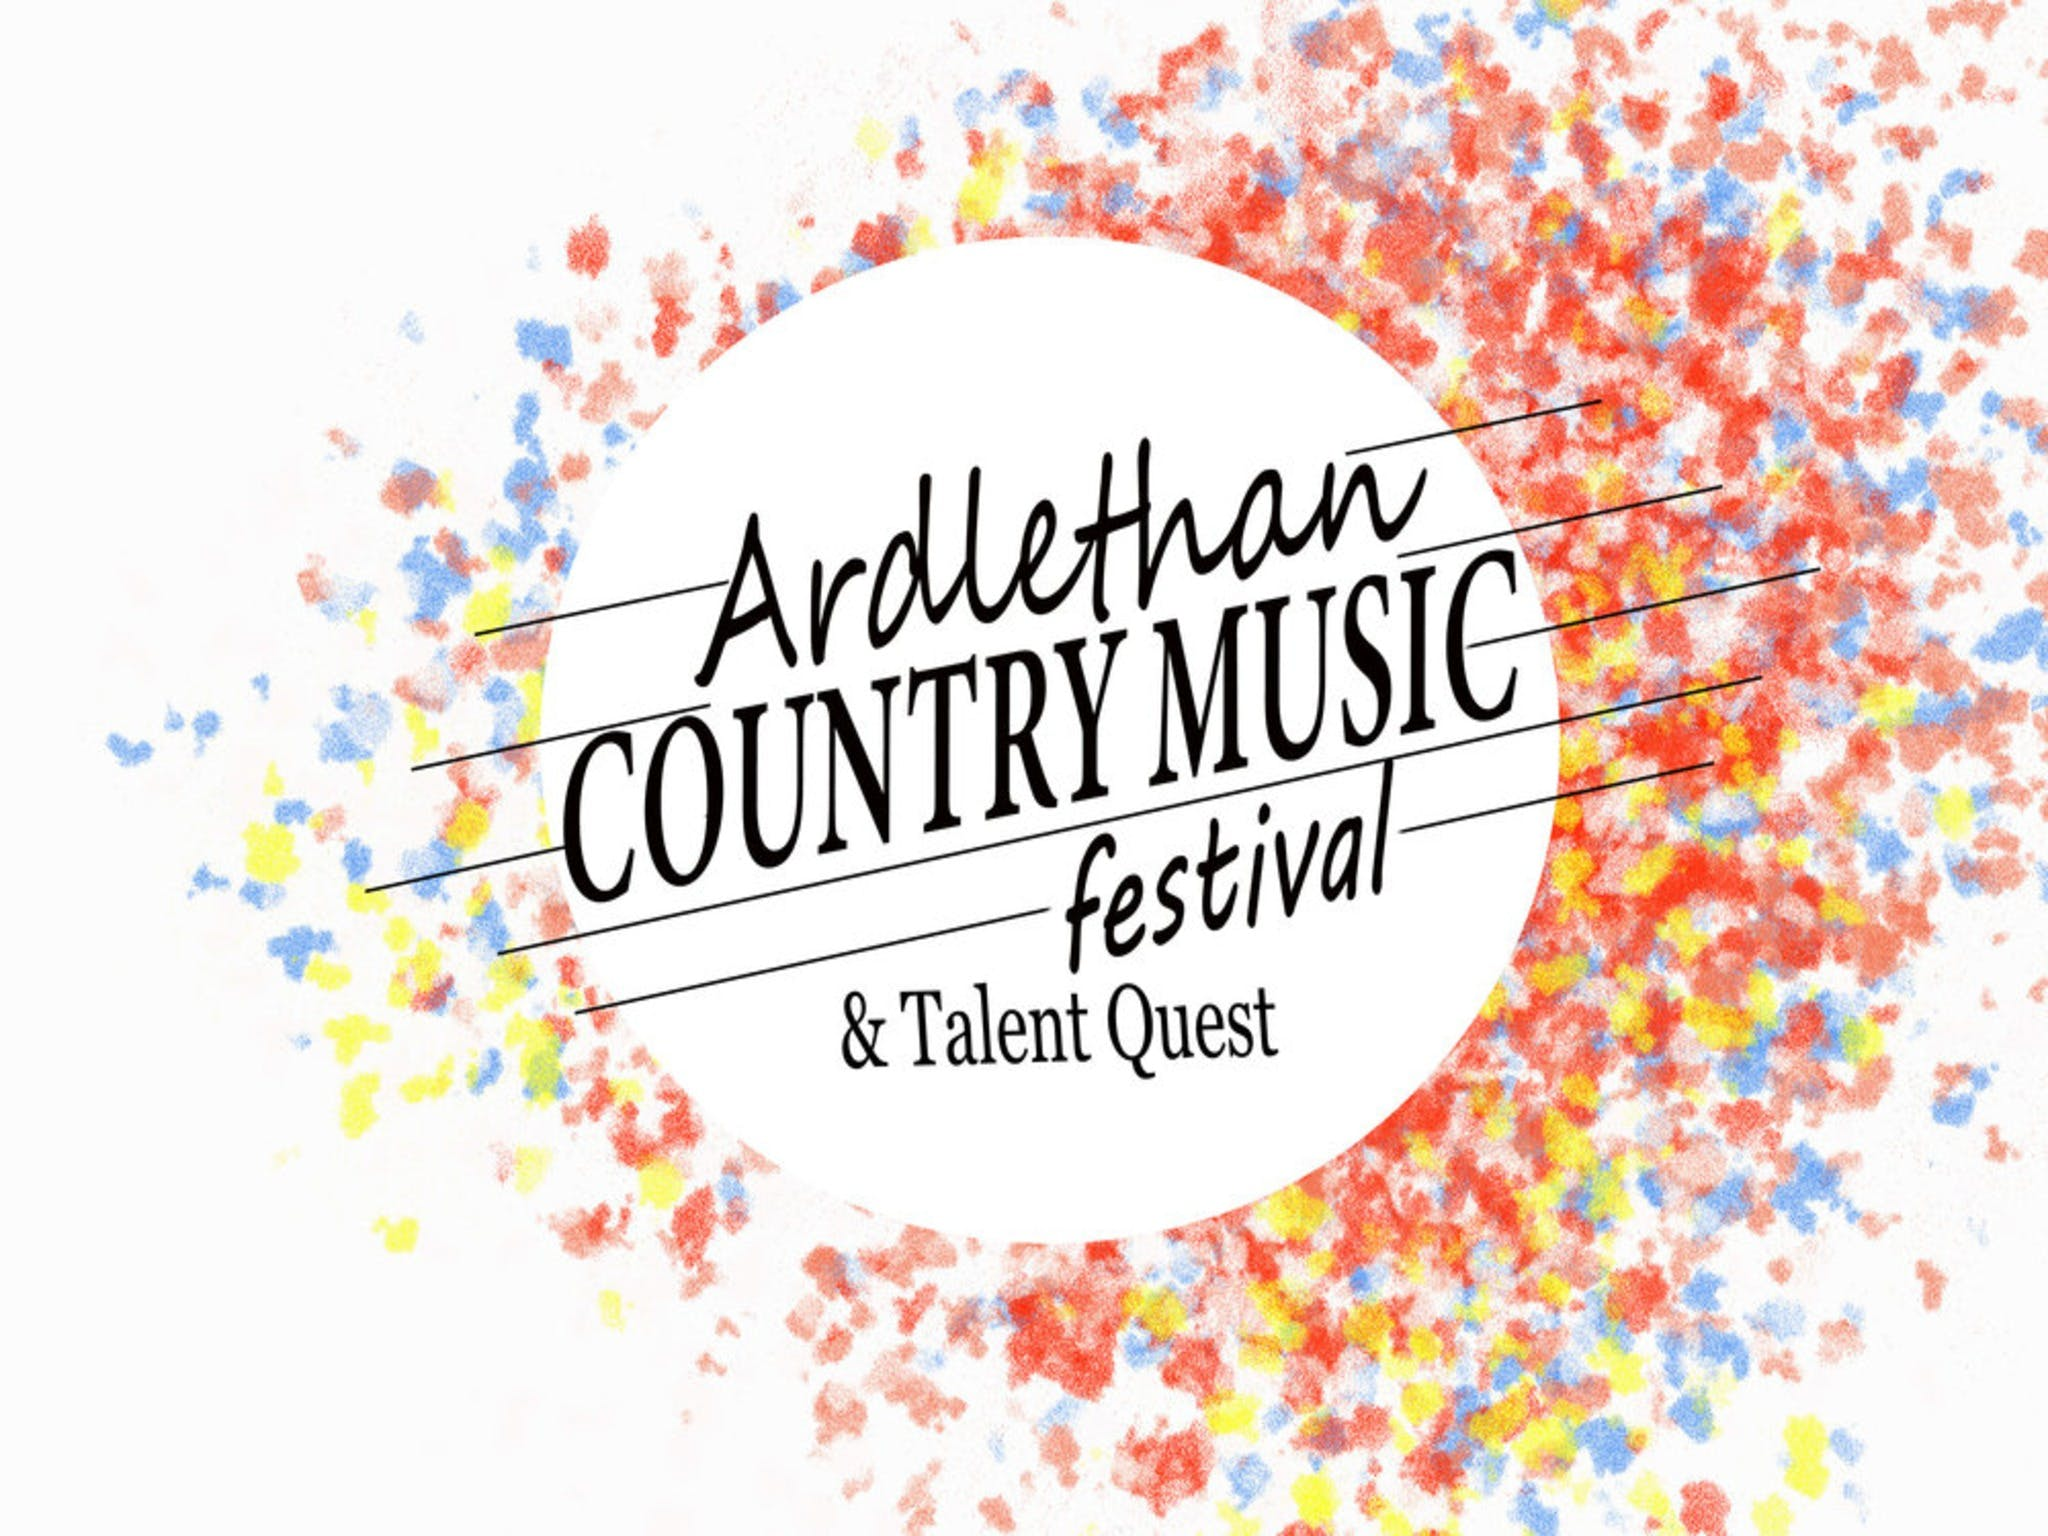 Ardlethan Country Music Festival - New South Wales Tourism